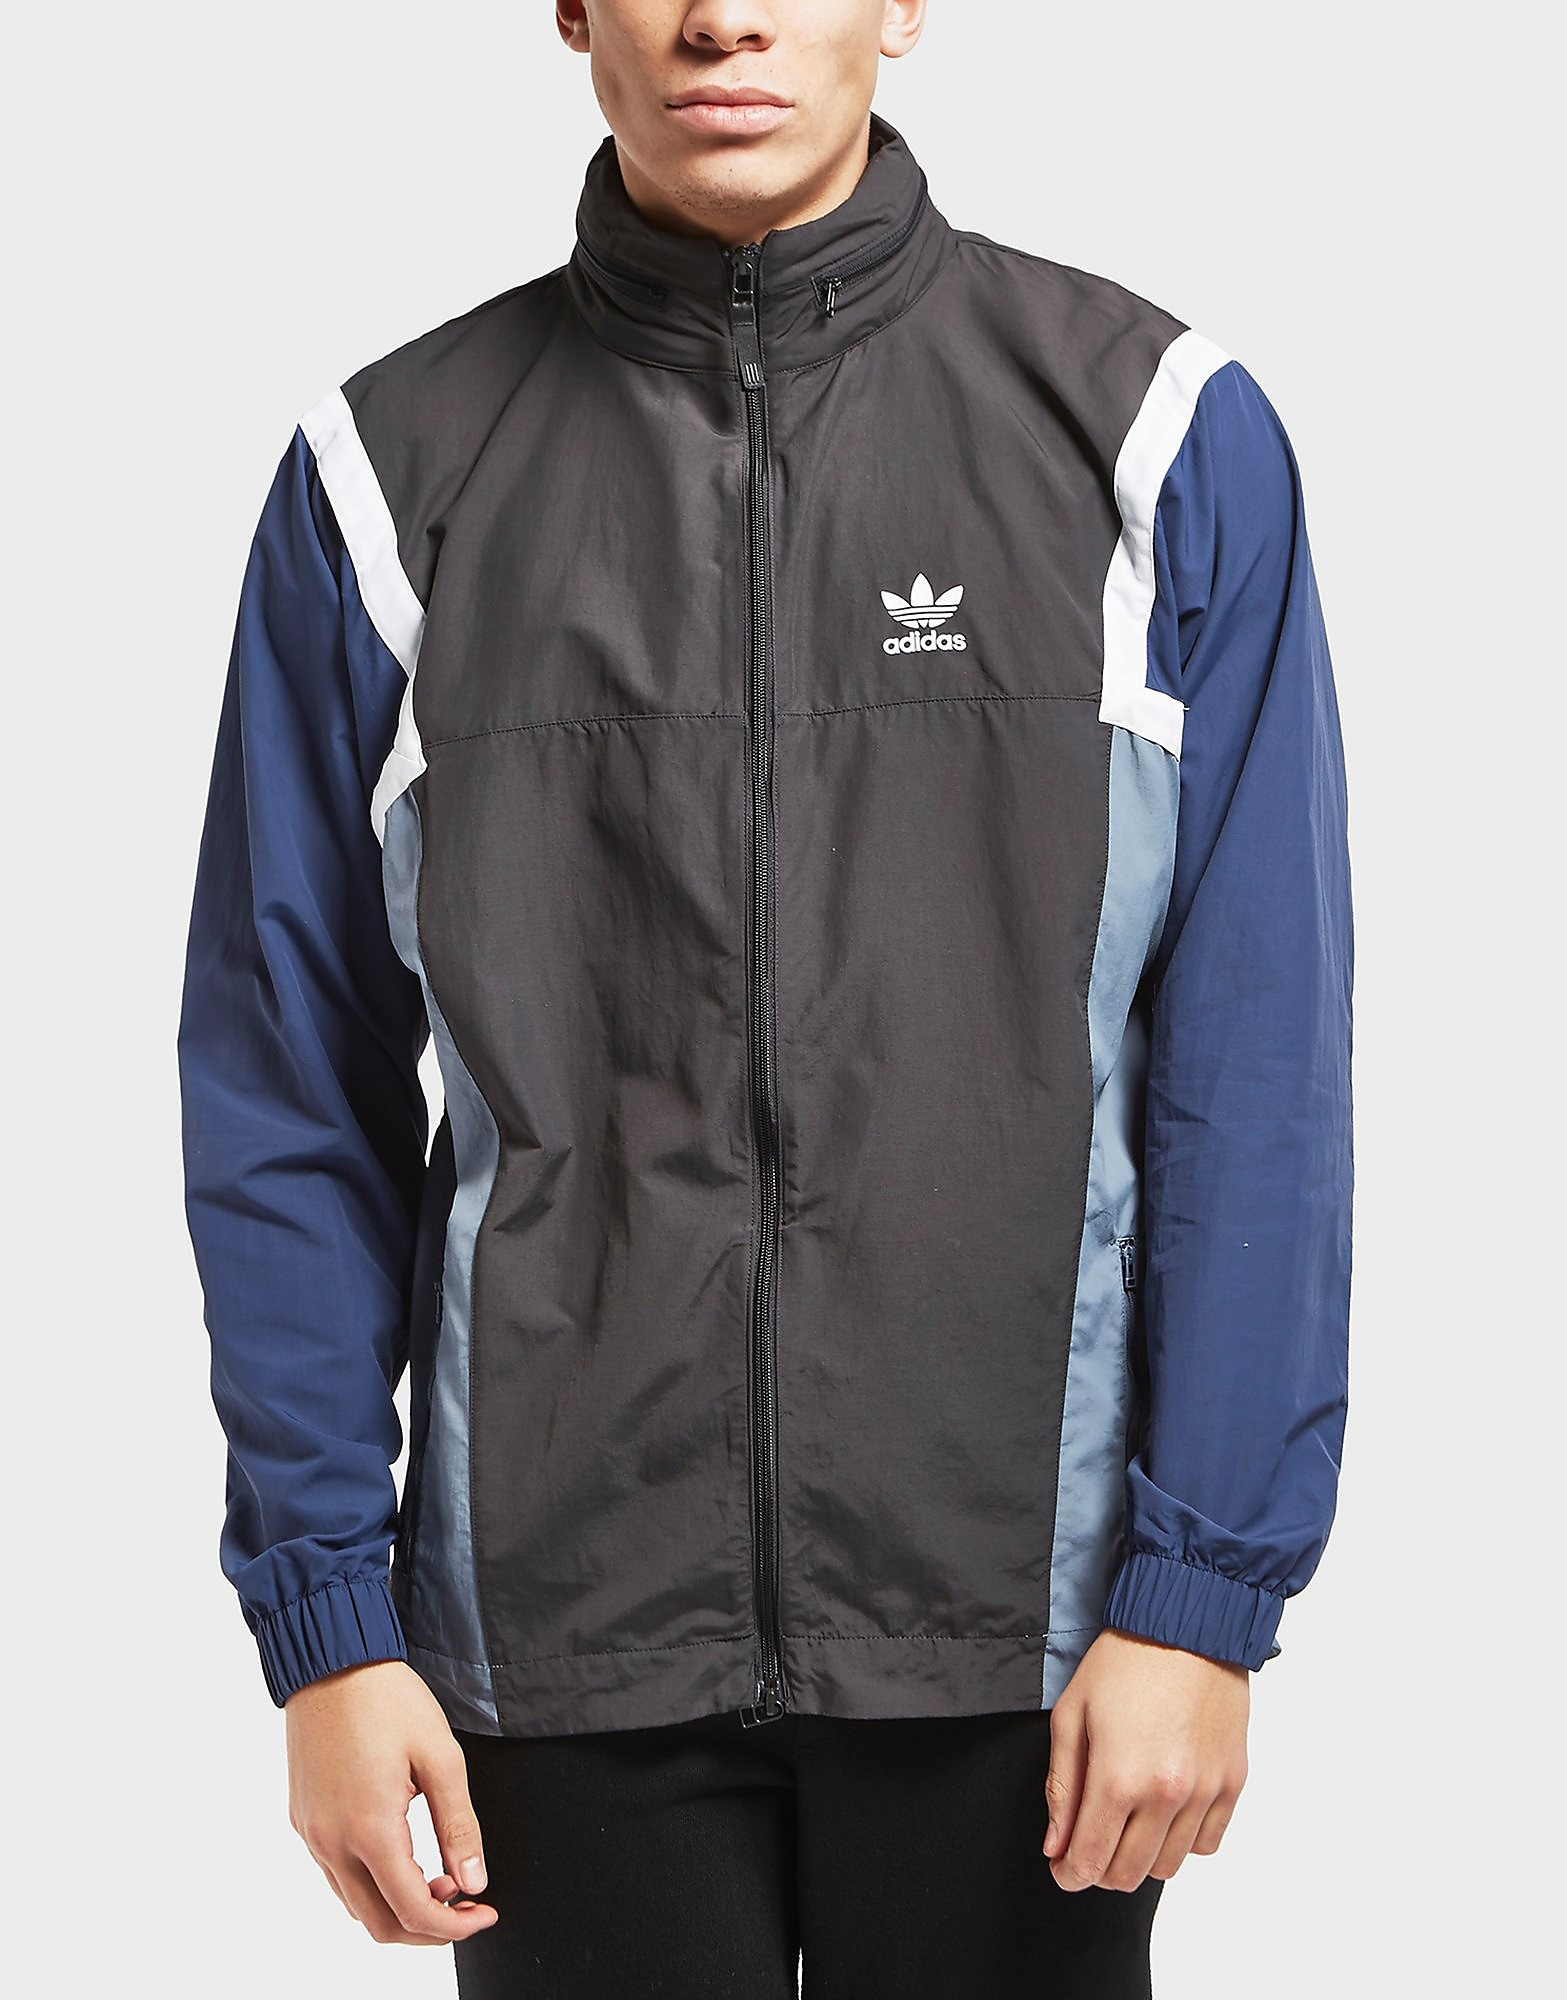 adidas Originals Nova Full Zip Lightweight Jacket